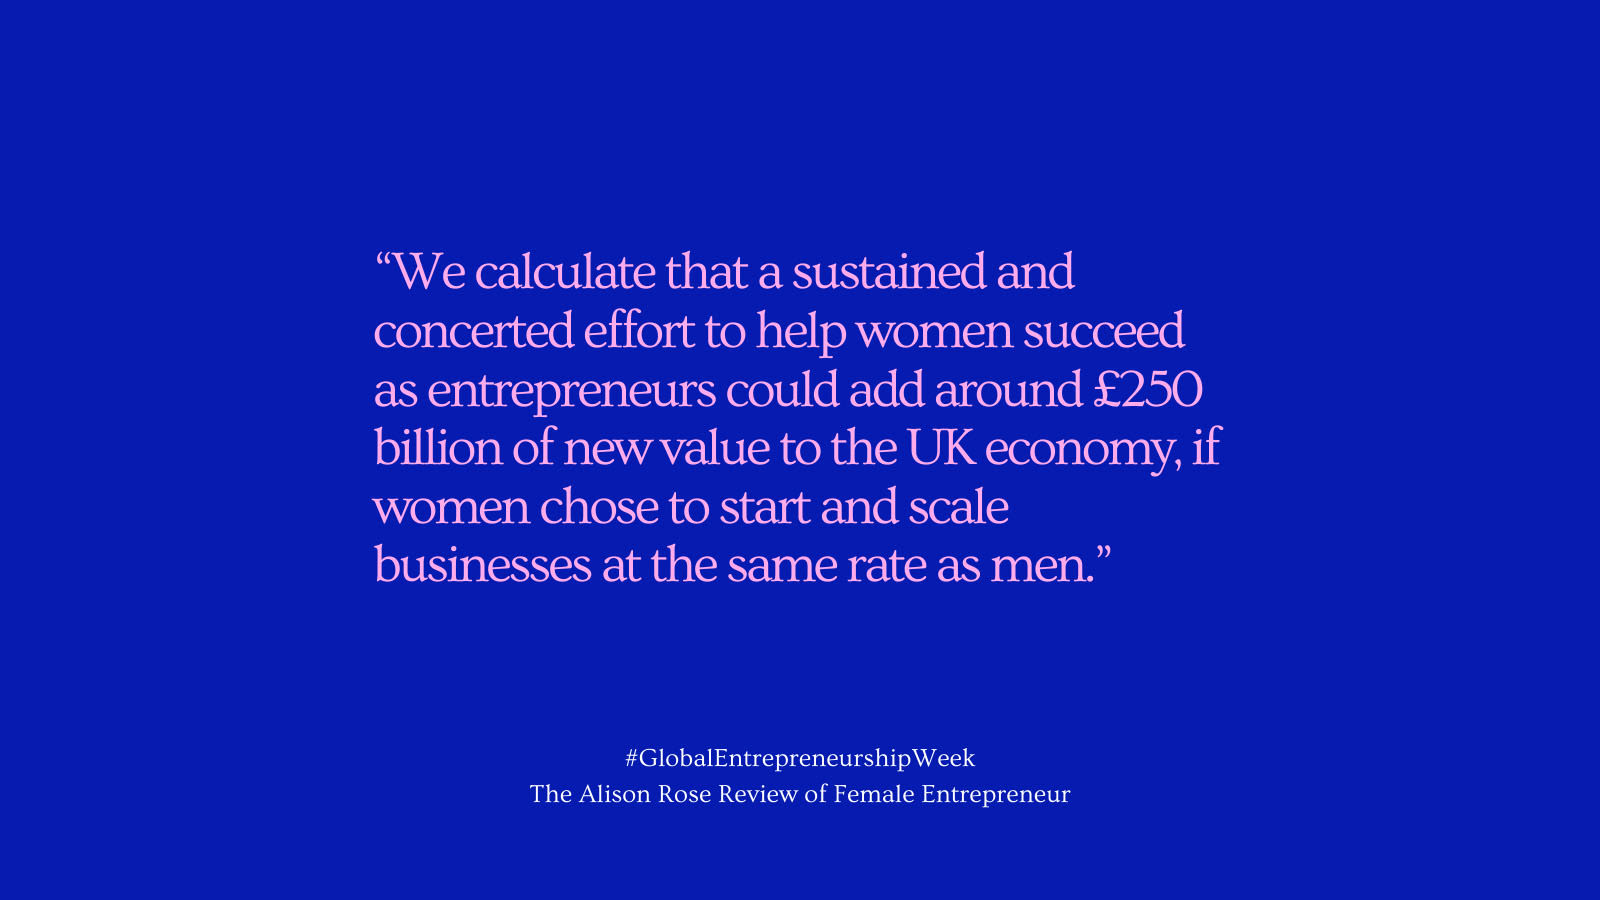 The Alison Rose Review of Female Entrepreneurs quote